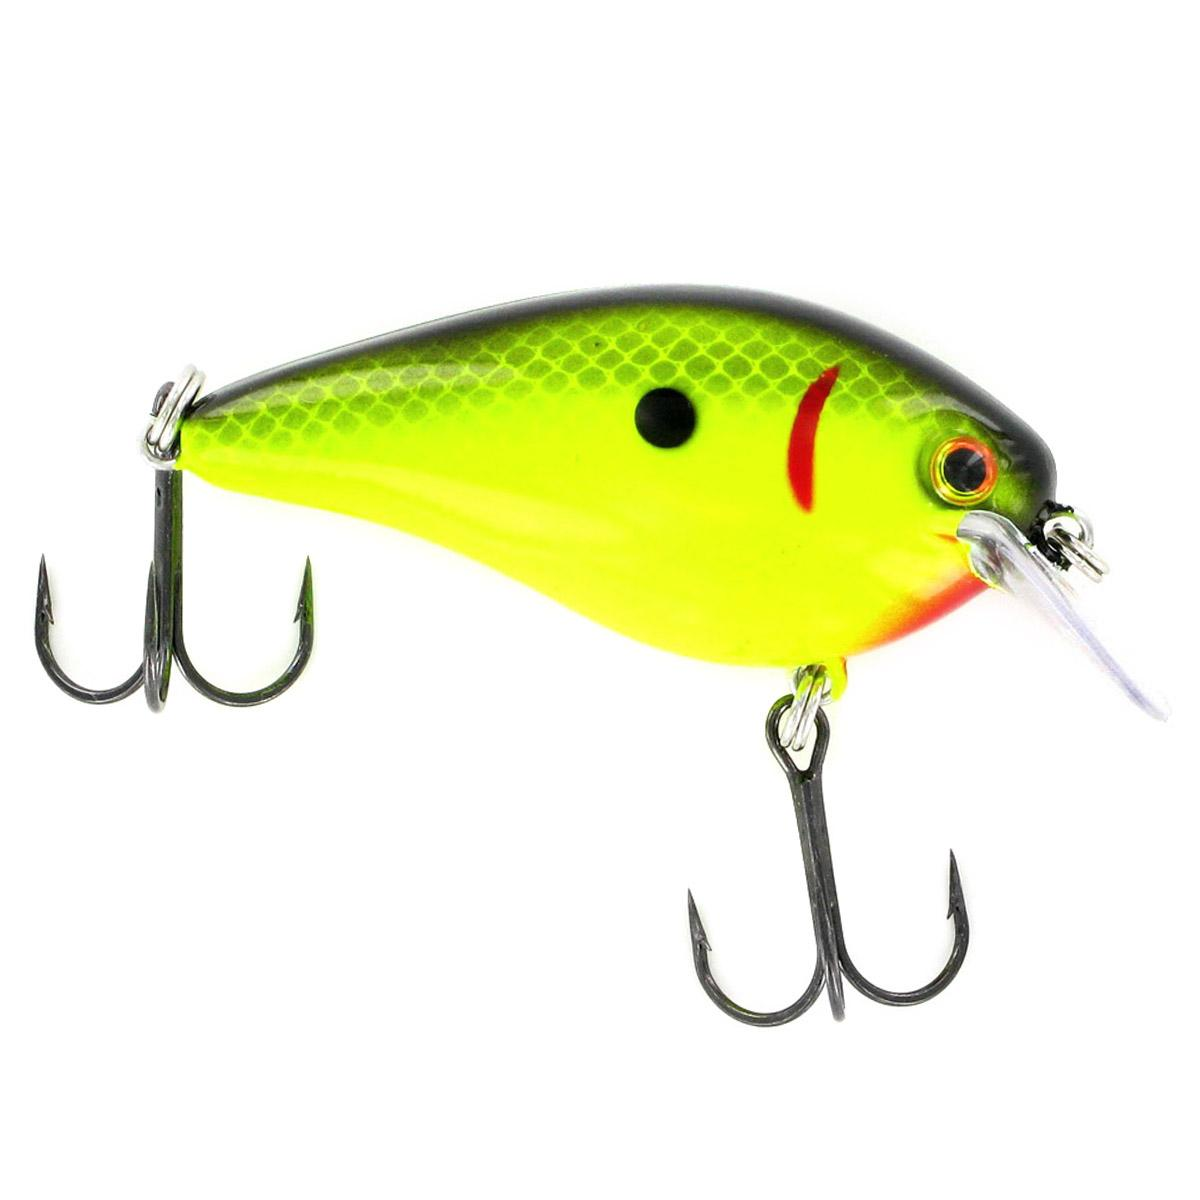 Strike King KVD Square Bill Crankbait 1.5